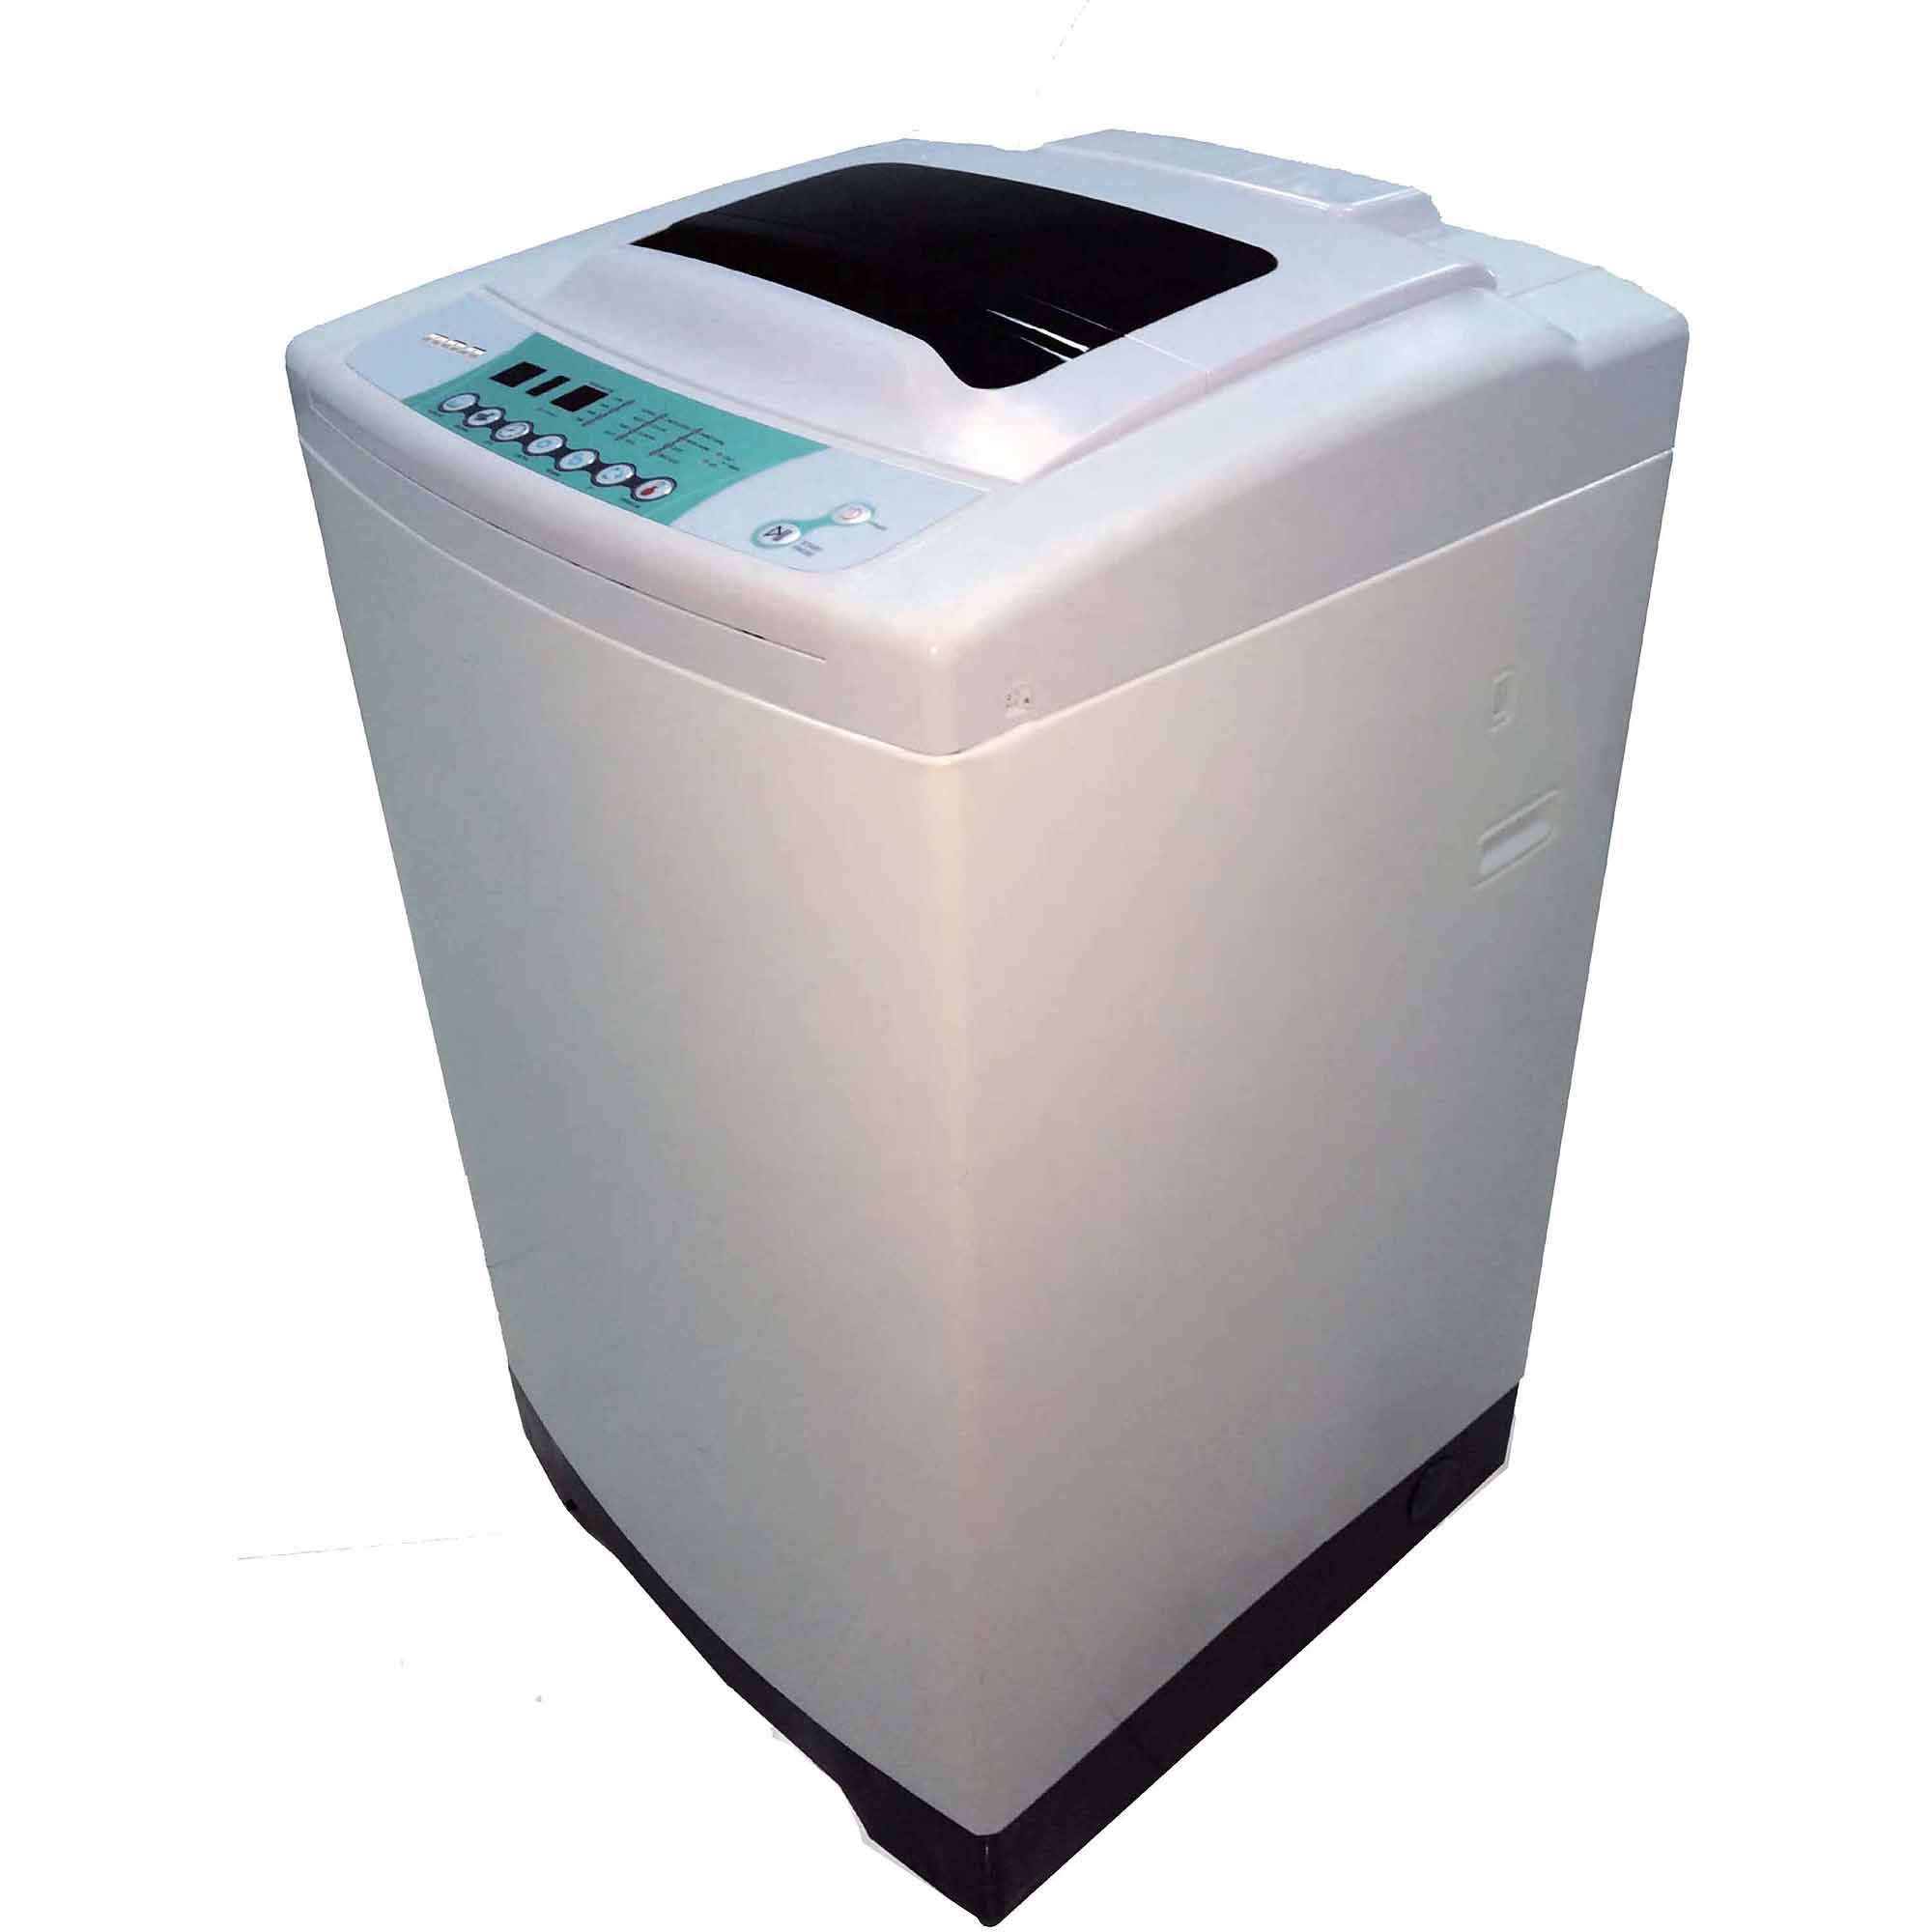 Best Choice Products Portable Compact Mini Twin Tub Washing Machine ...